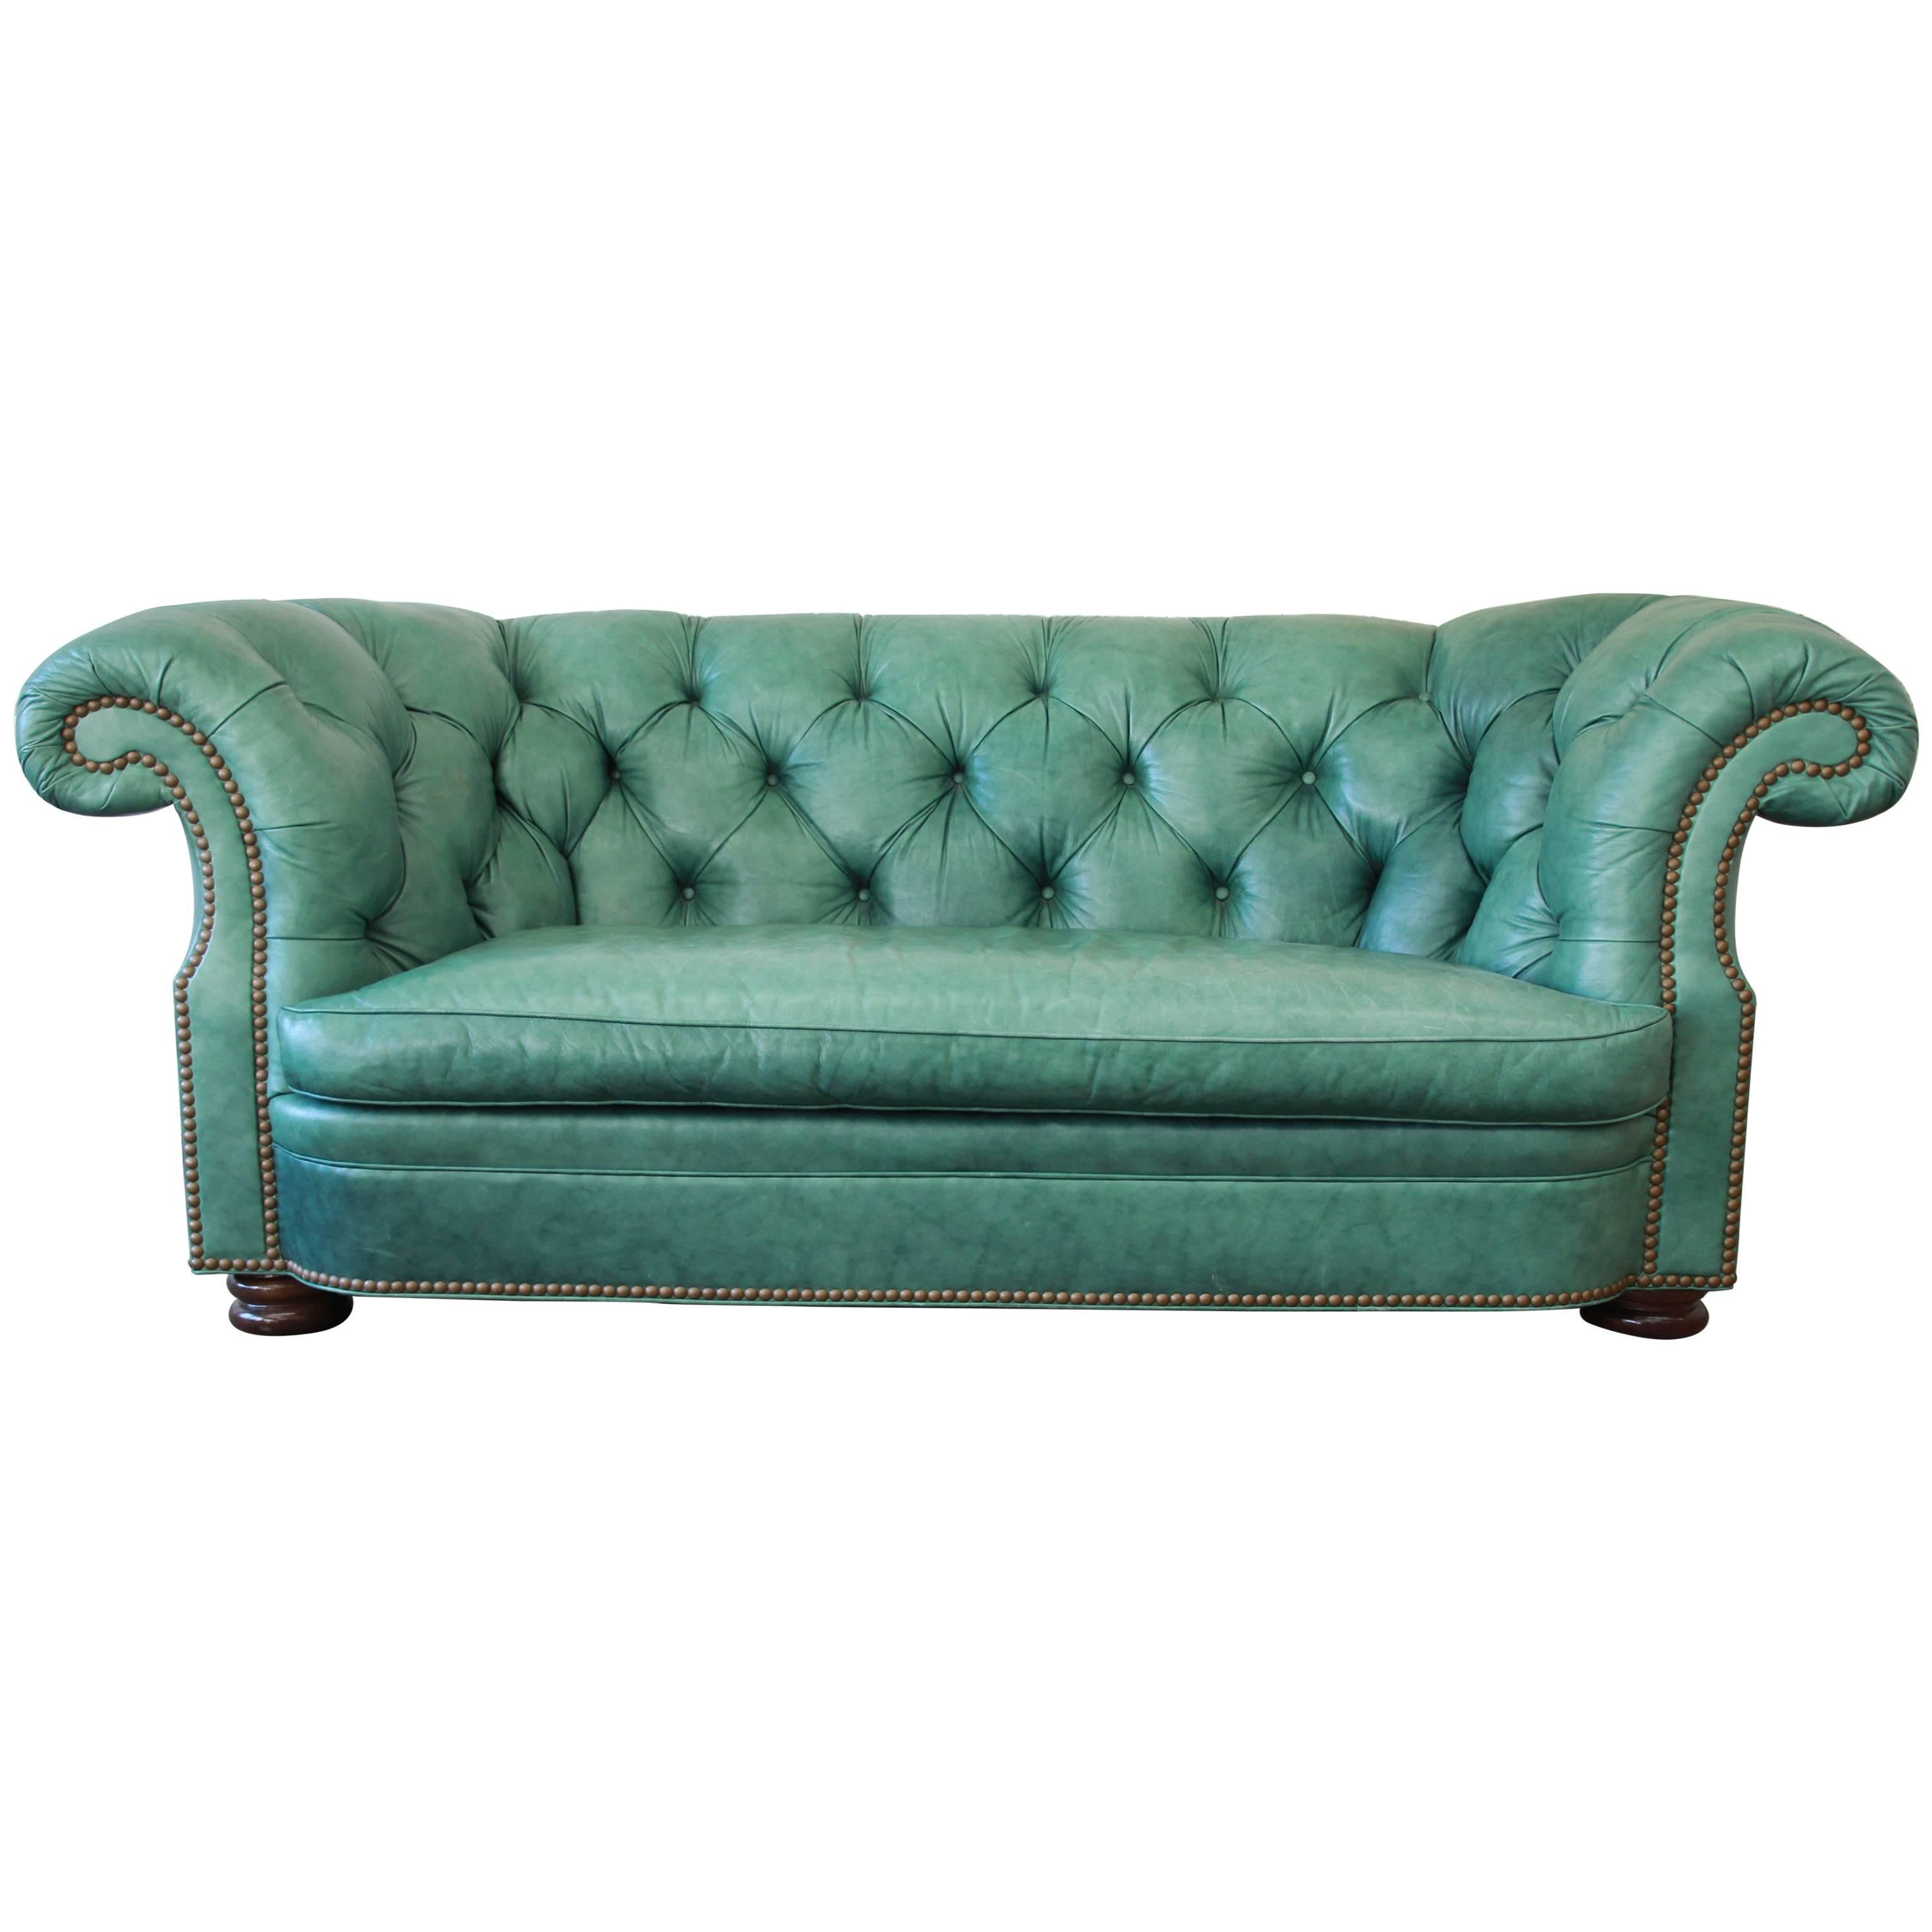 Vintage Teal Tufted Leather Chesterfield Sofa By Hancock U0026 Moore For Sale